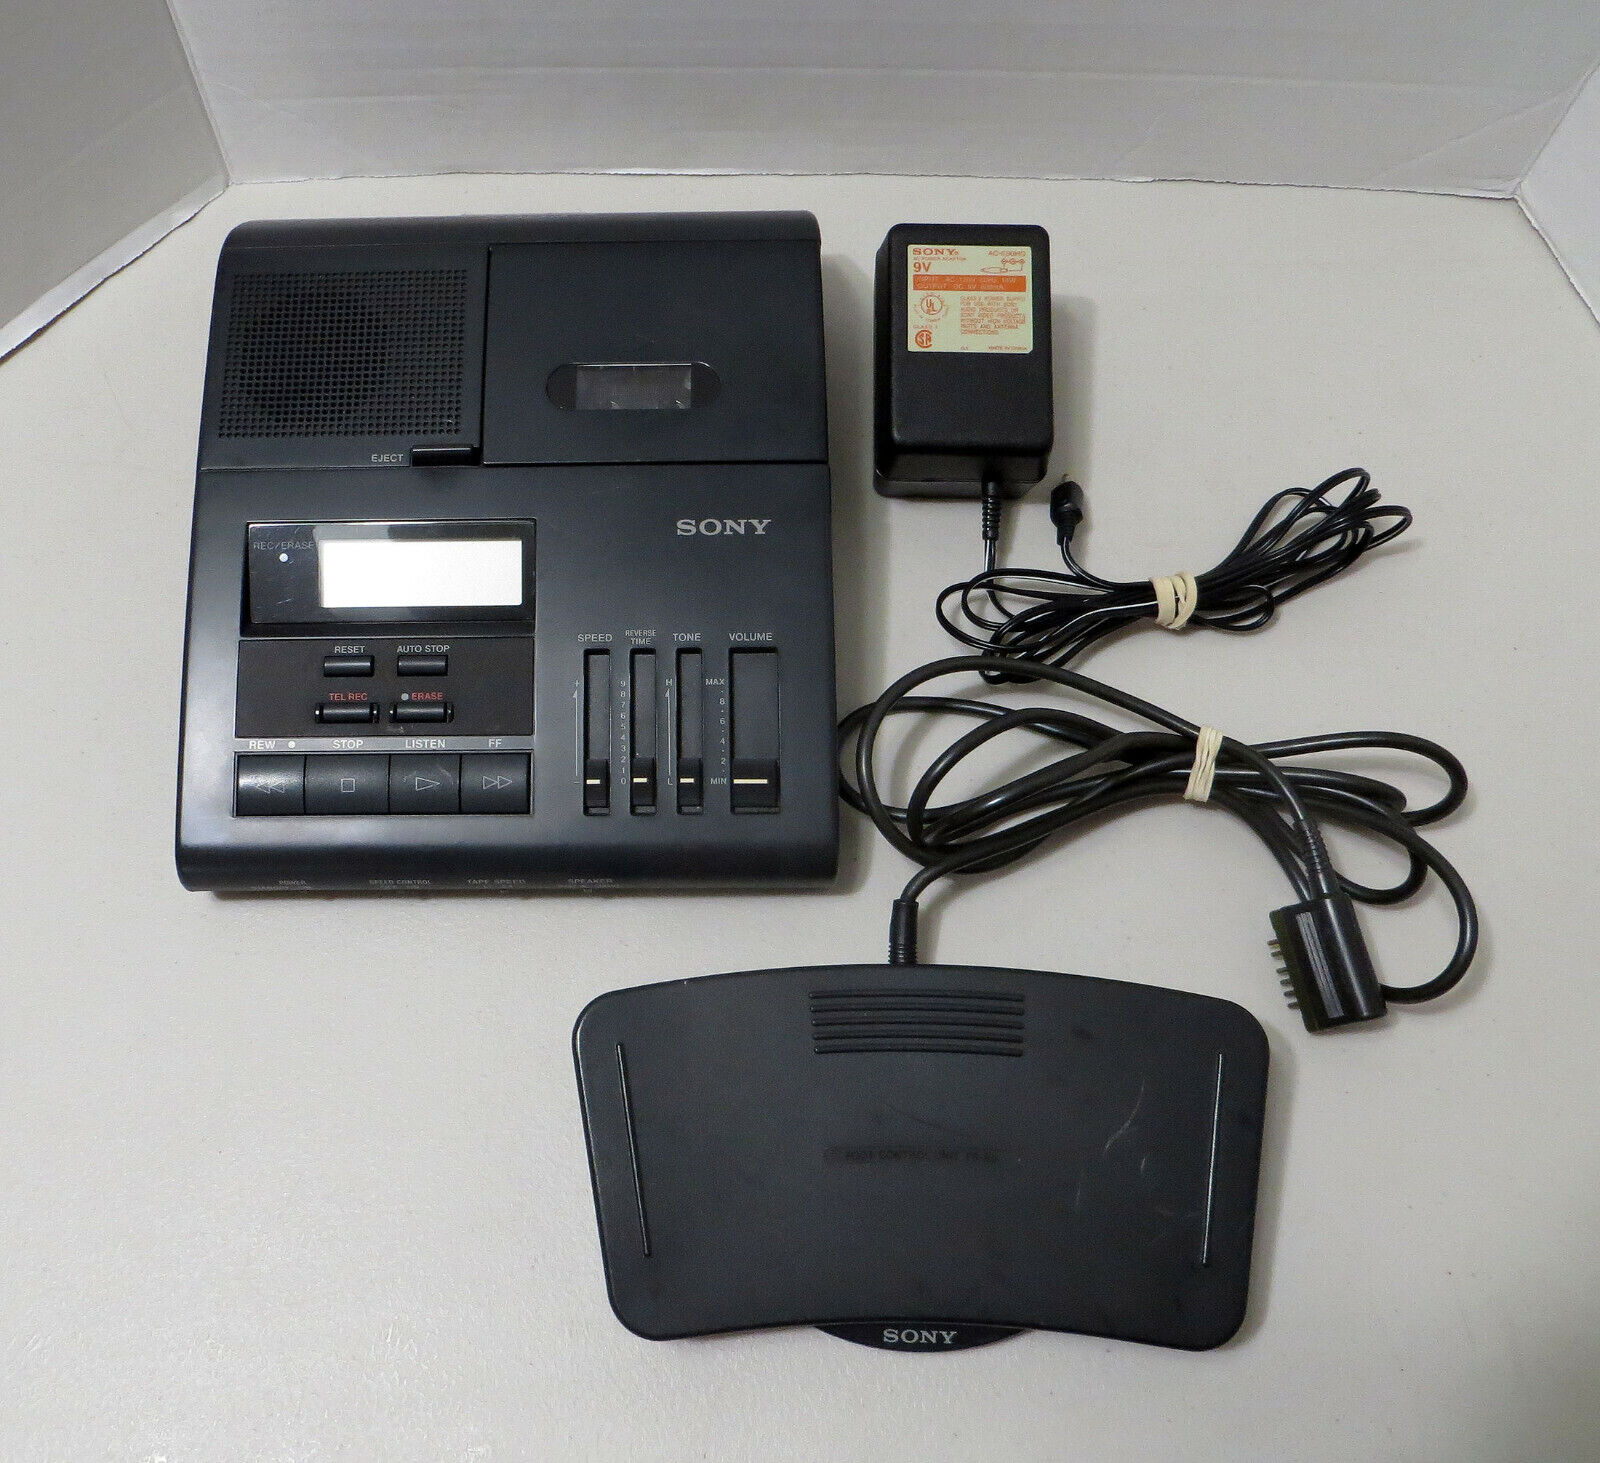 Sony BM-850 Microcassette Dictation Recorder With AC Adapter Foot Pedal - $99.99